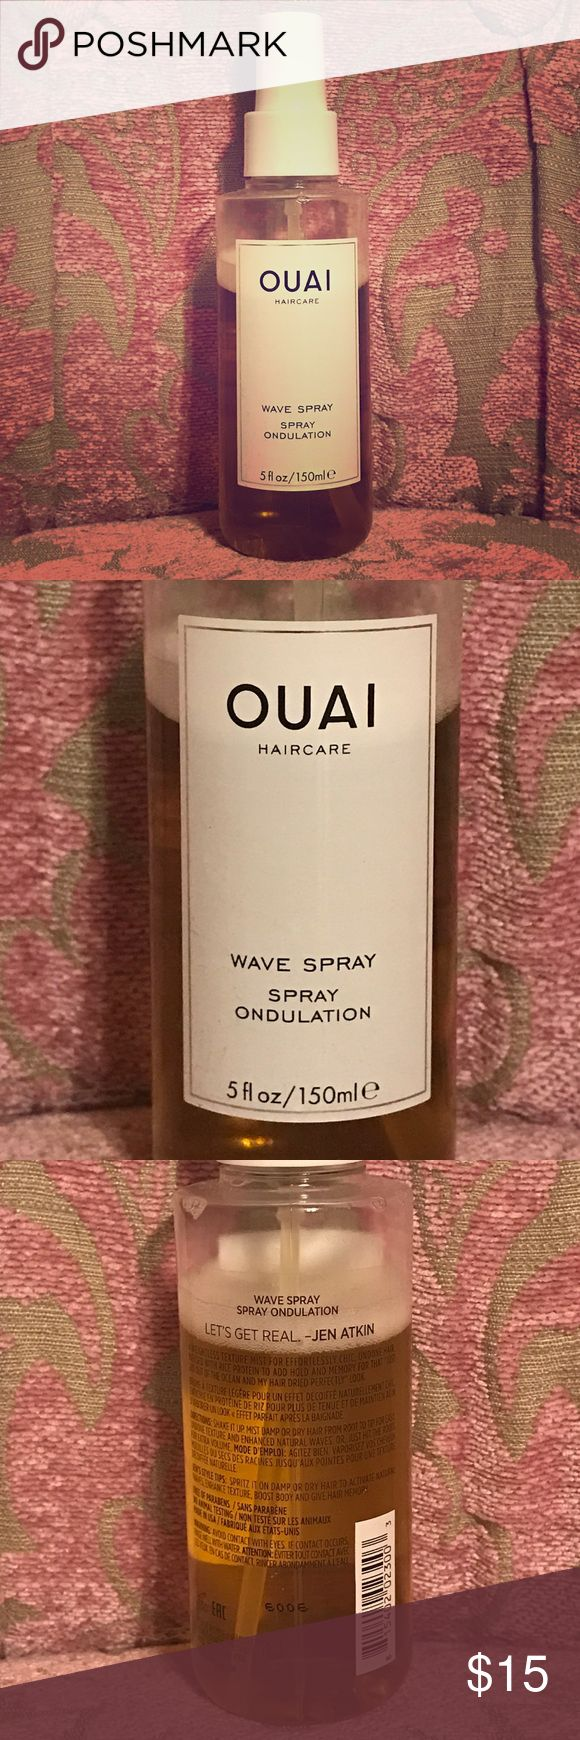 Ouai Wave Spray Gently used, but my hair loves another type of salt spray 💝 Don't miss out on this awesome cult favorite!! ouai Accessories Hair Accessories